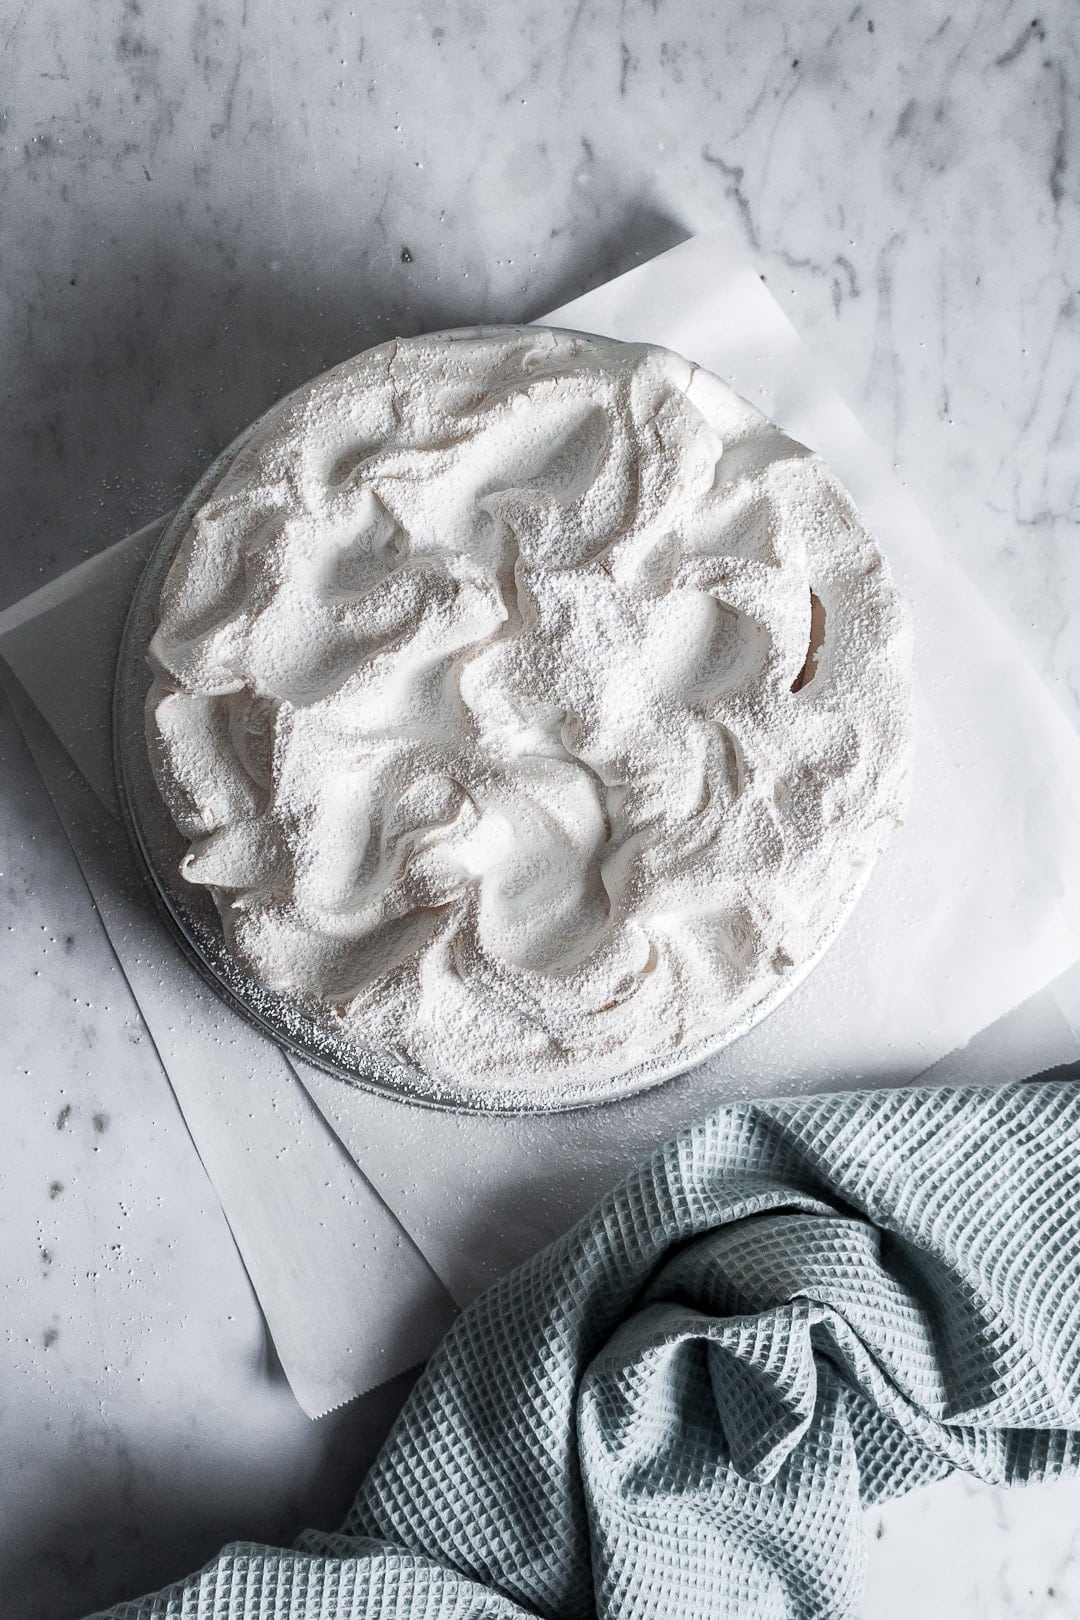 Top view of baked meringue covering a layer cake - on a marble background with parchment paper underneath